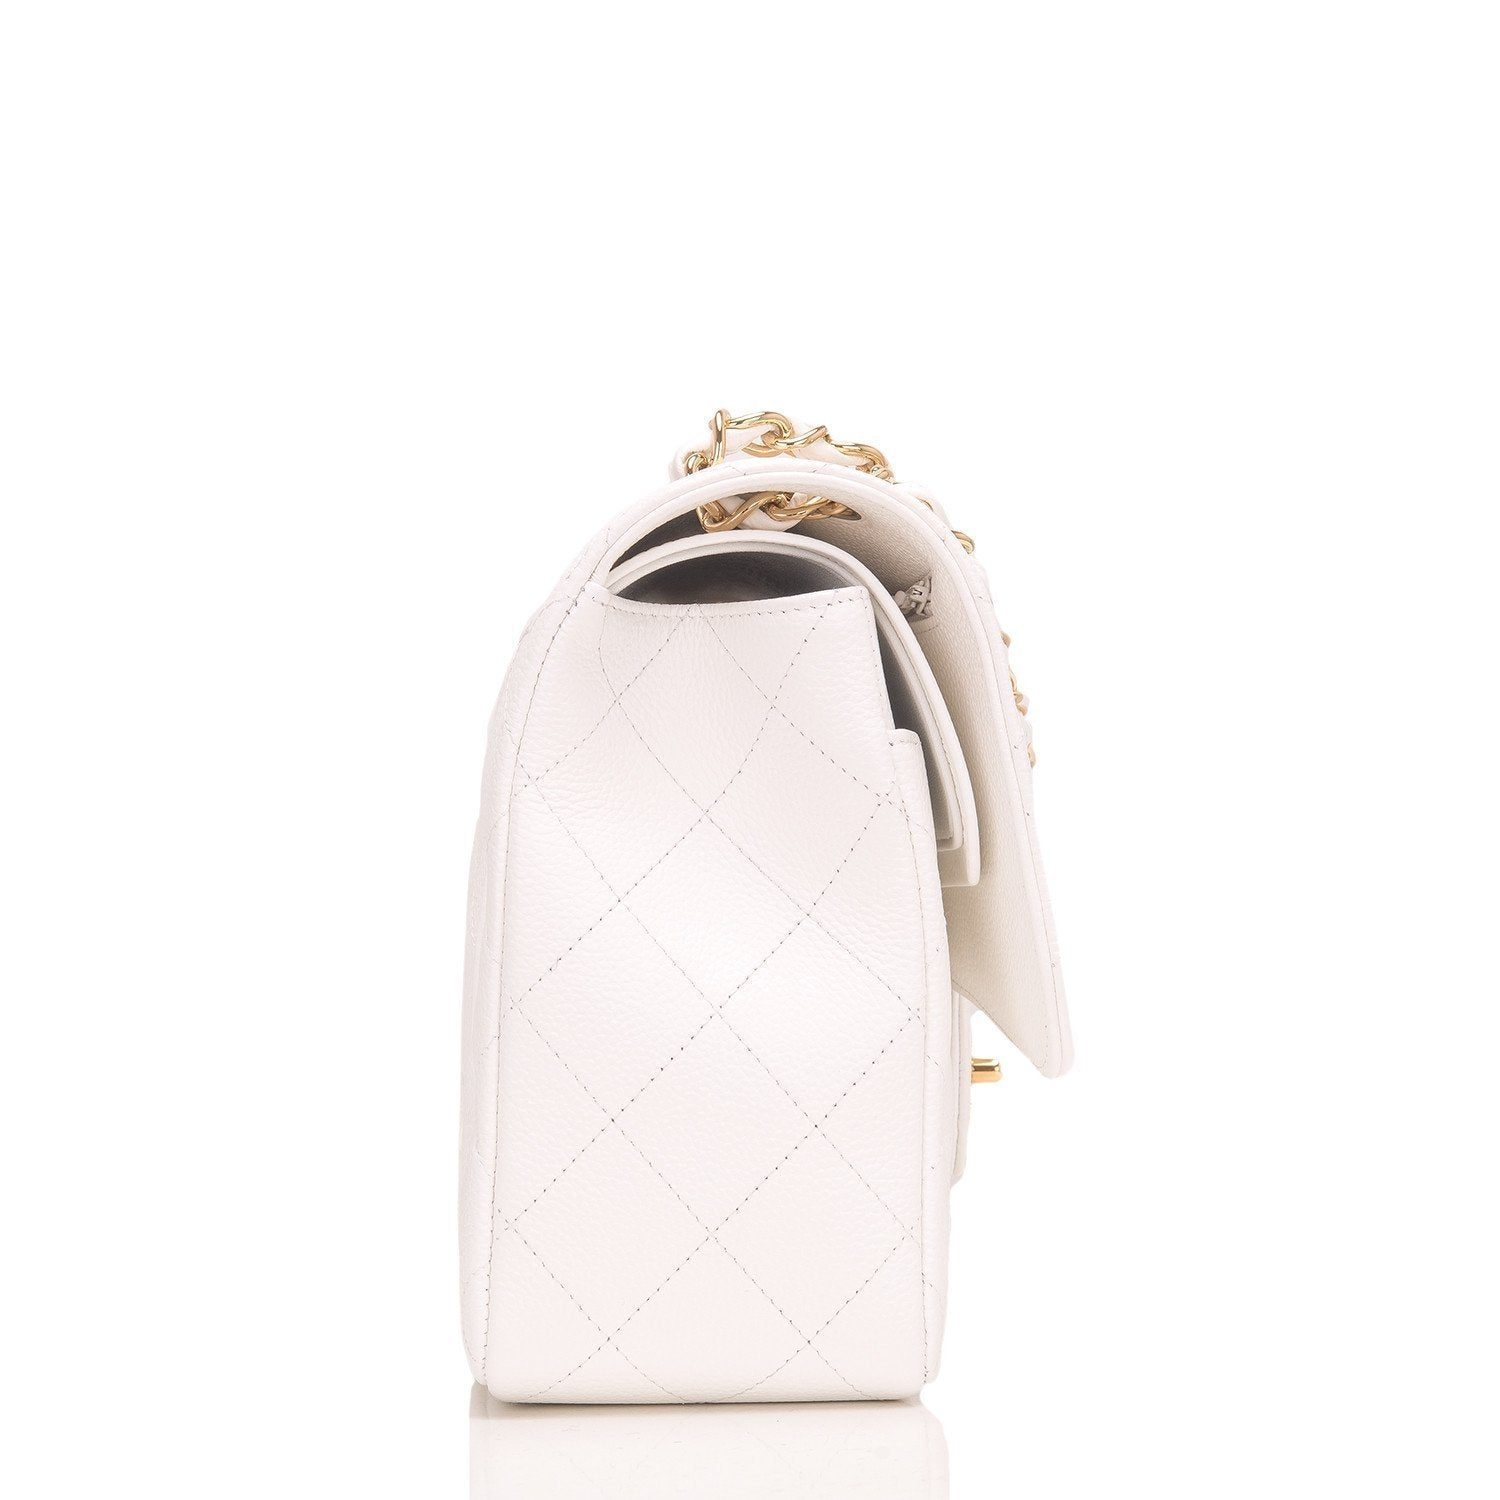 Chanel White Quilted Caviar Jumbo Classic Double Flap Bag Handbags